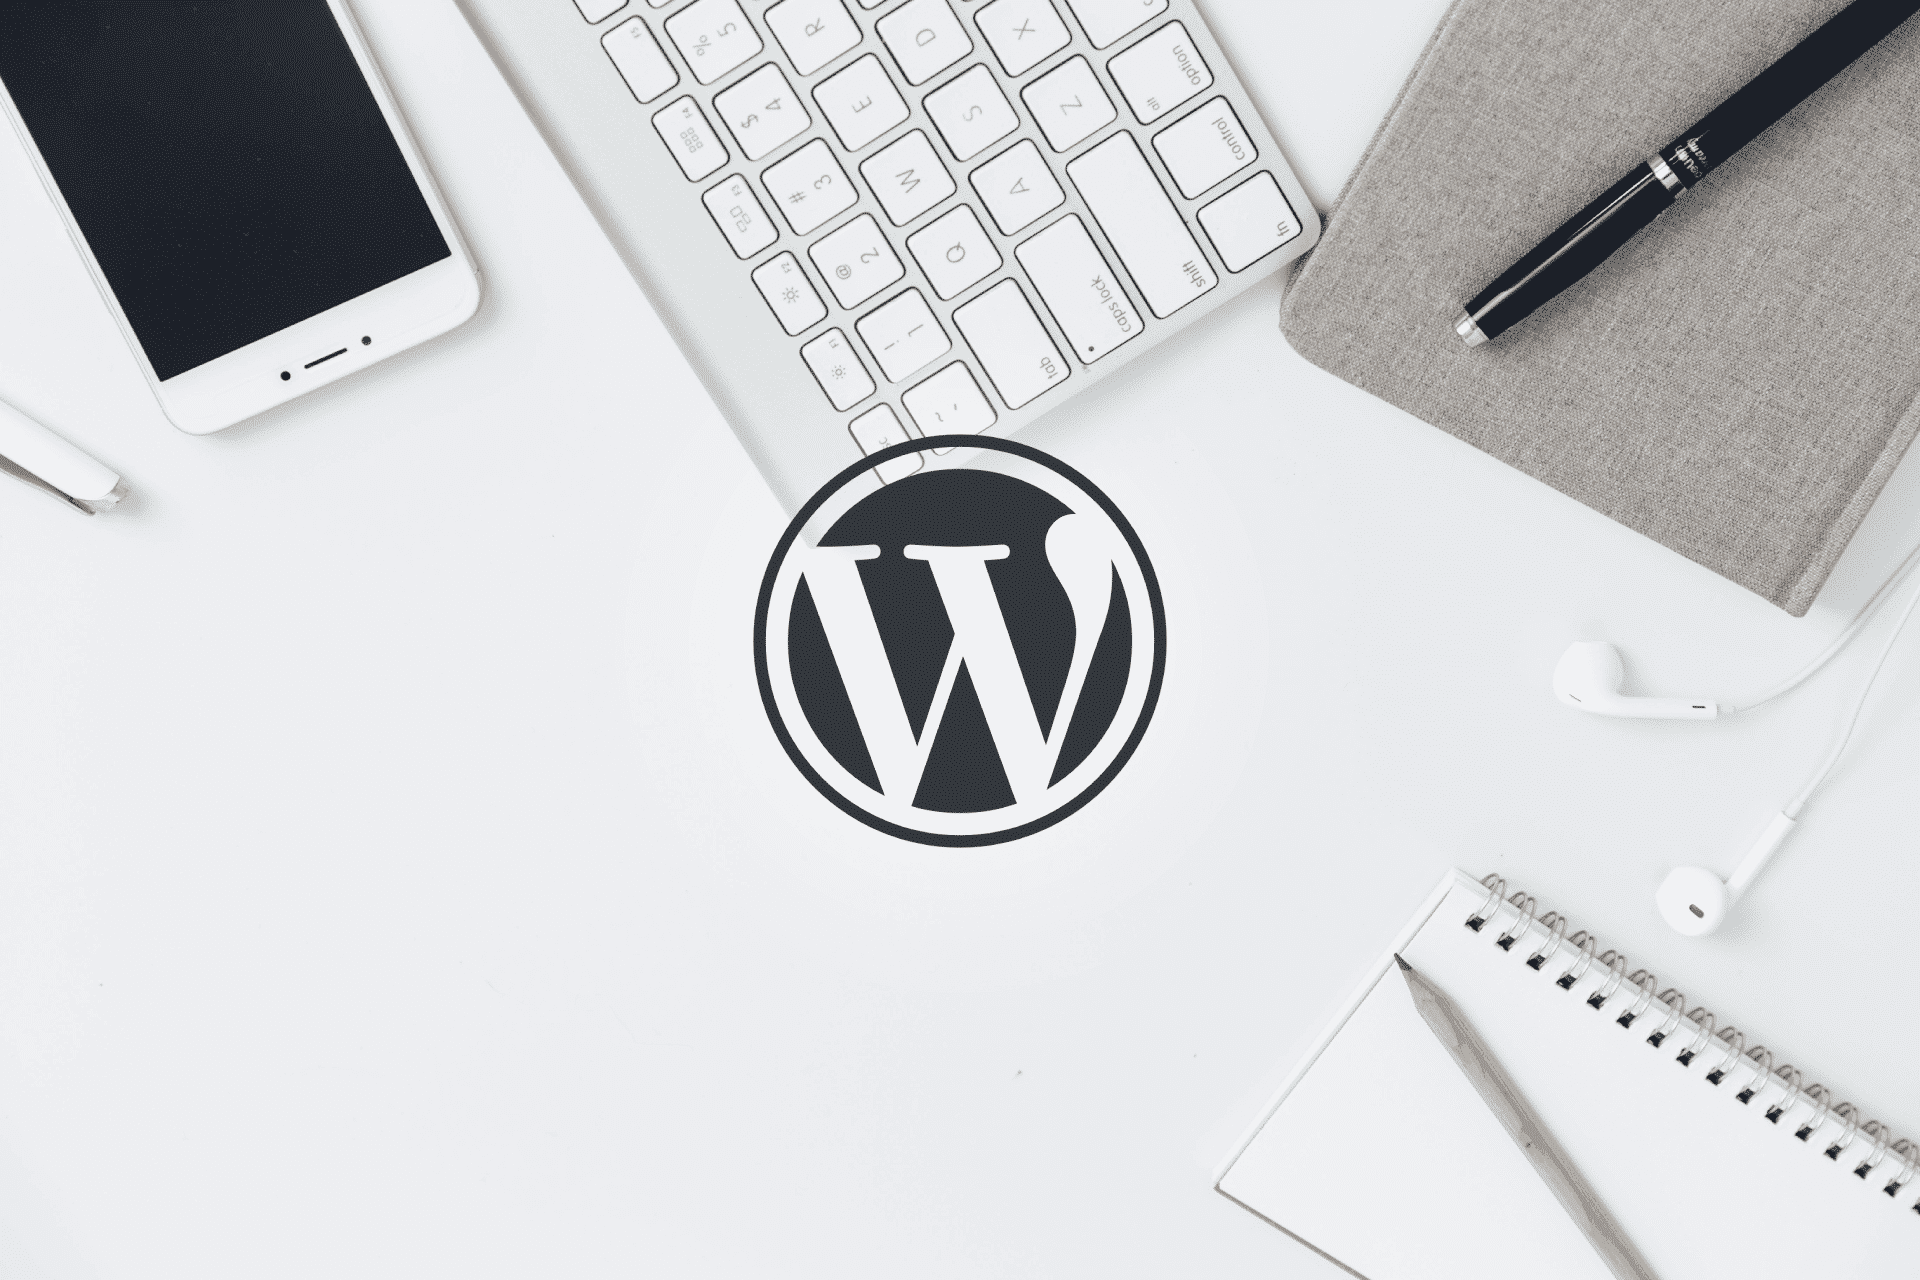 WordPress 5.0 to be released on November 27, 2018: are you ready for Gutenberg?